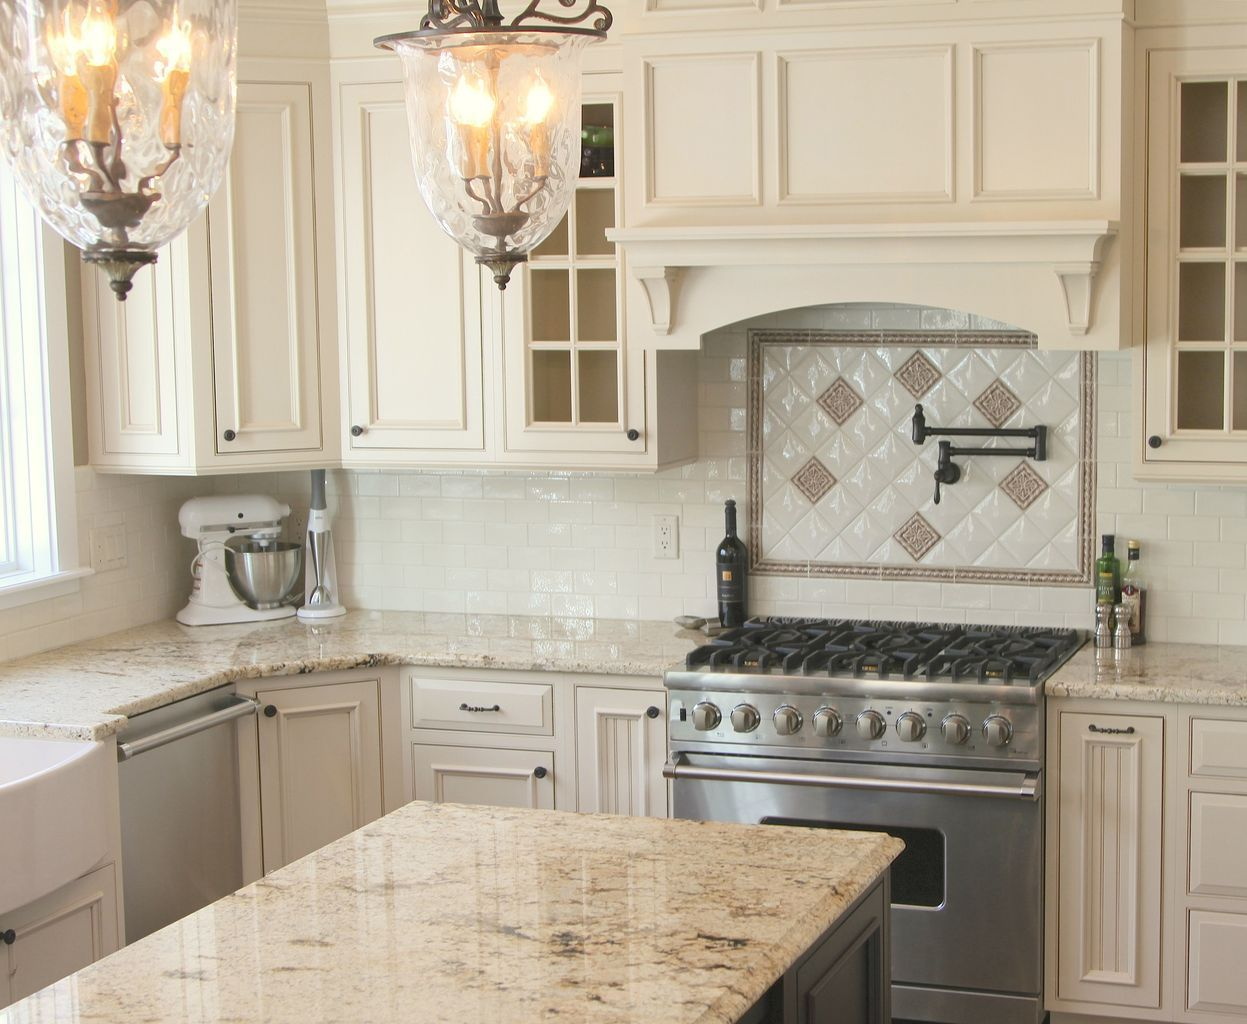 Best 50 Inspiring Cream Colored Kitchen Cabinets Decor Ideas 640 x 480